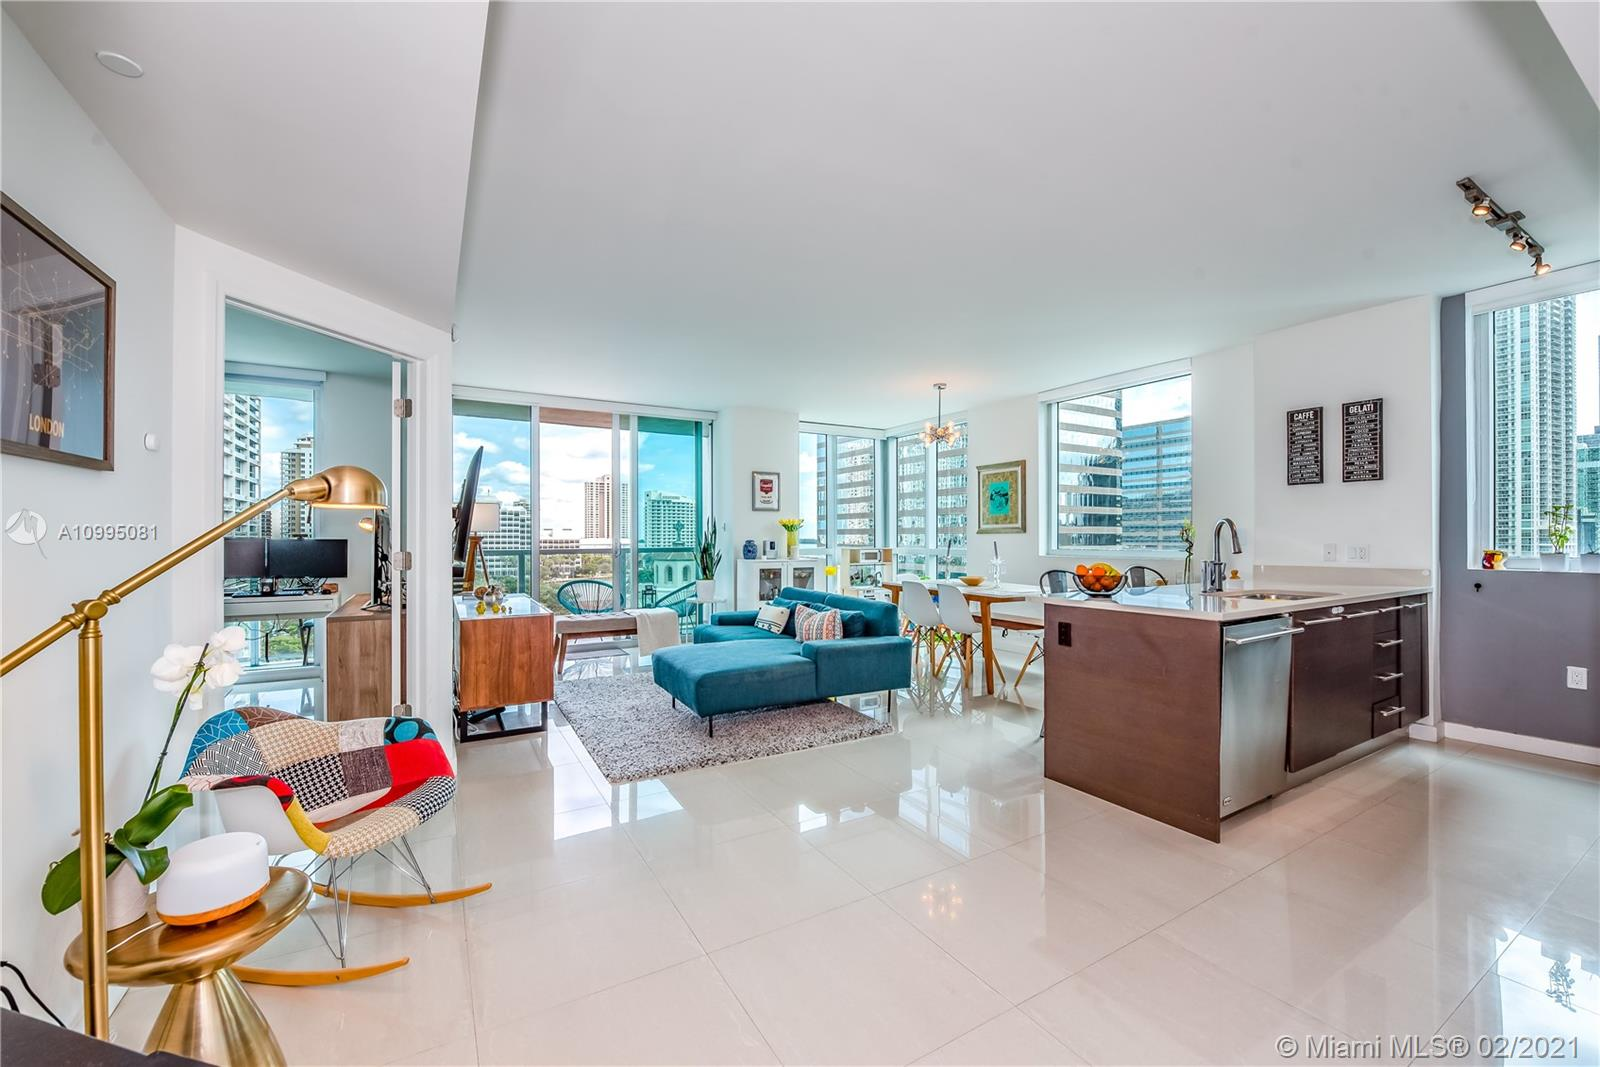 500 Brickell West Tower #902 - 500 Brickell Ave #902, Miami, FL 33131